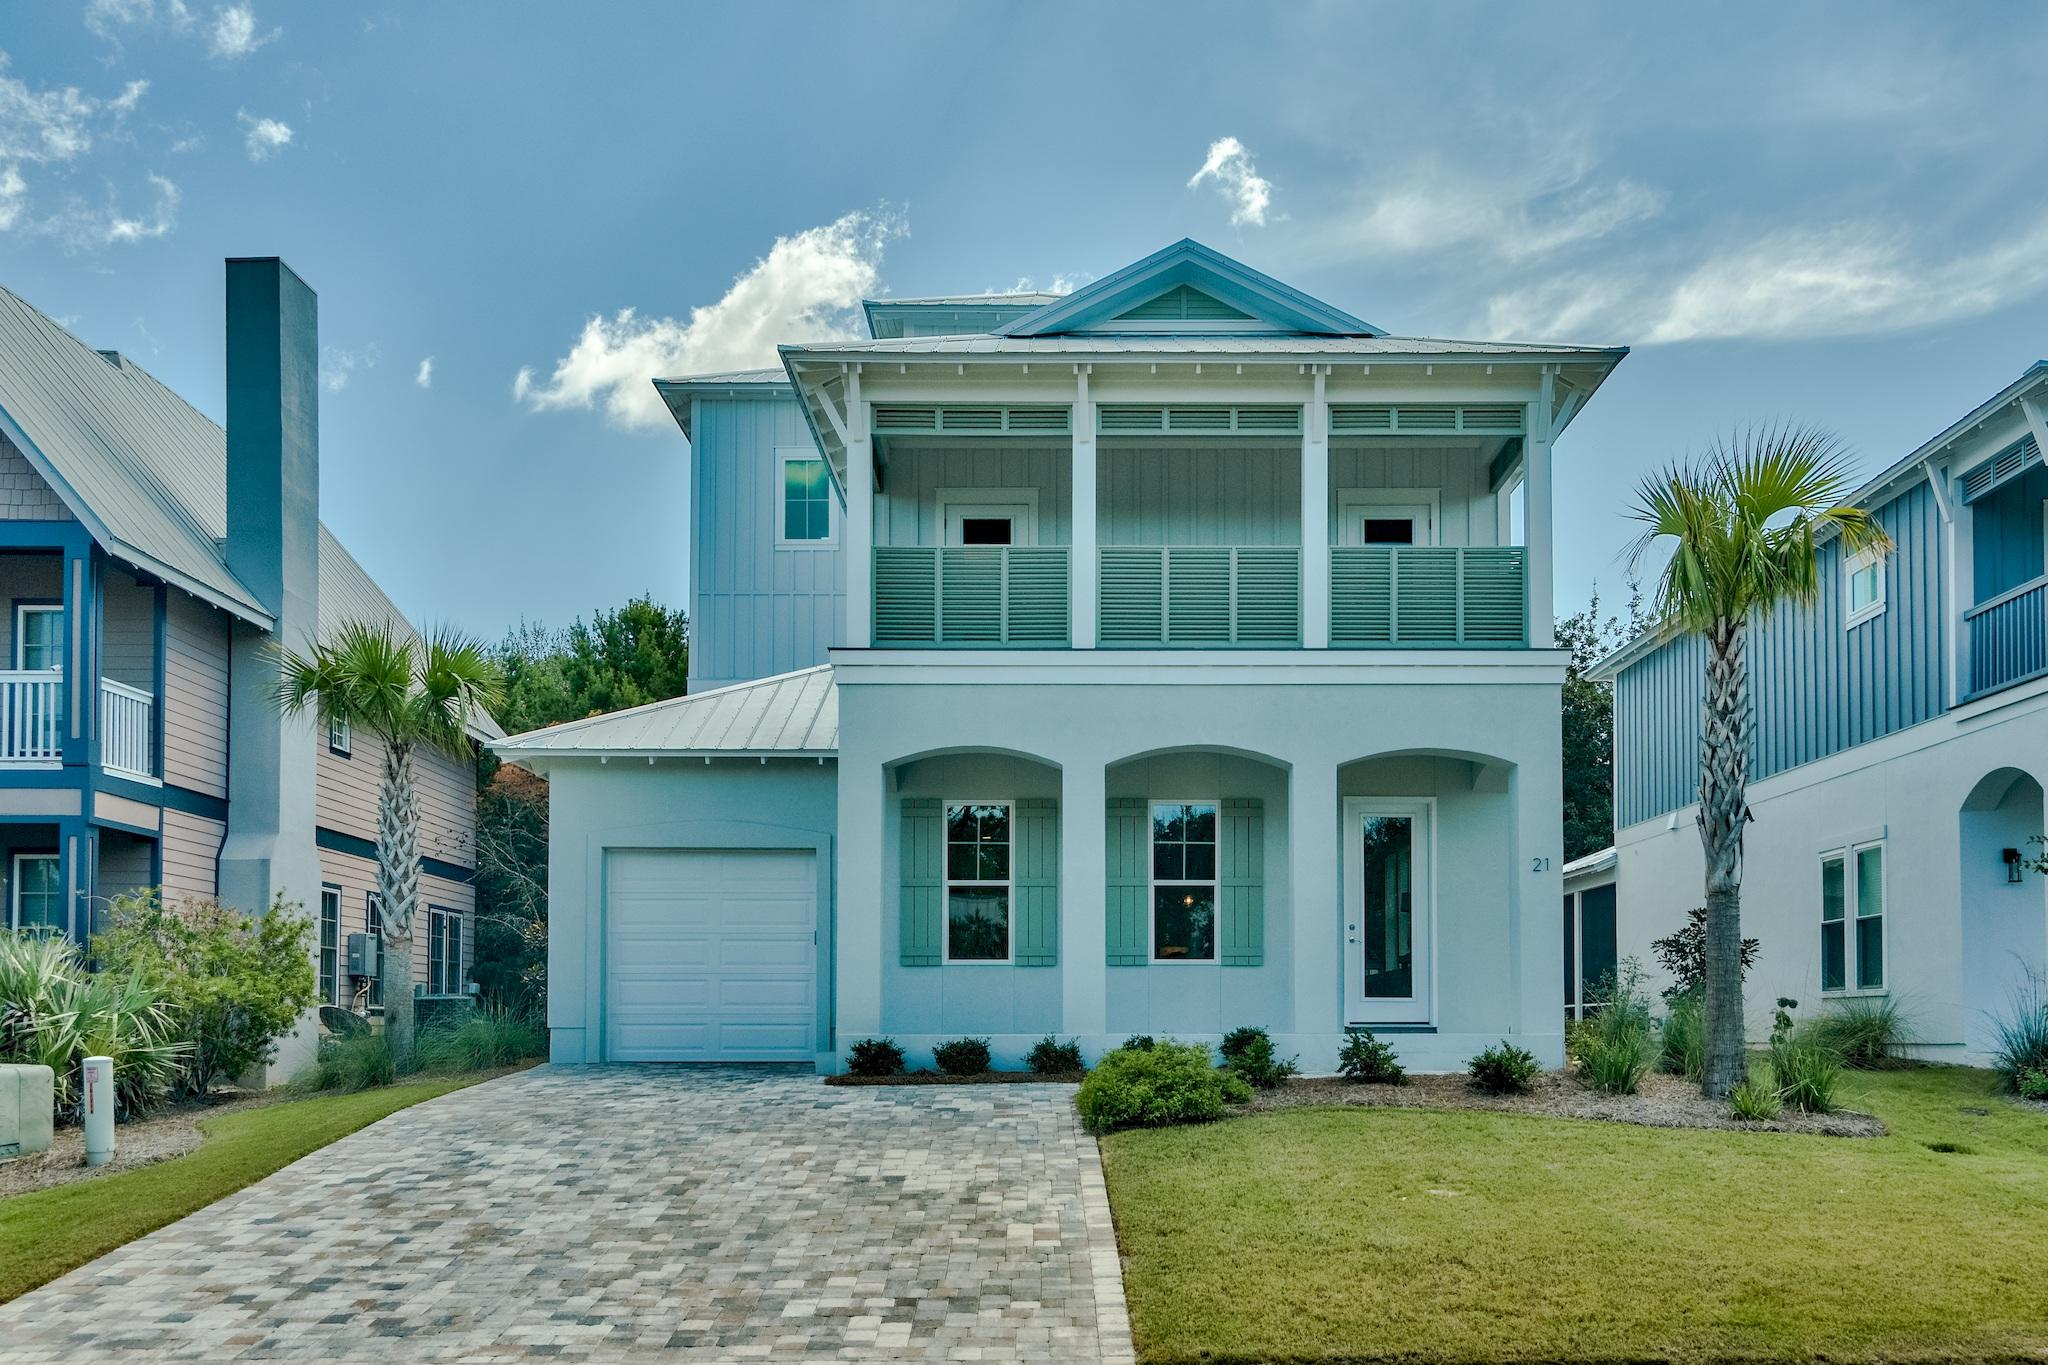 Photo of home for sale at Lot 65 Willow Mist, Inlet Beach FL